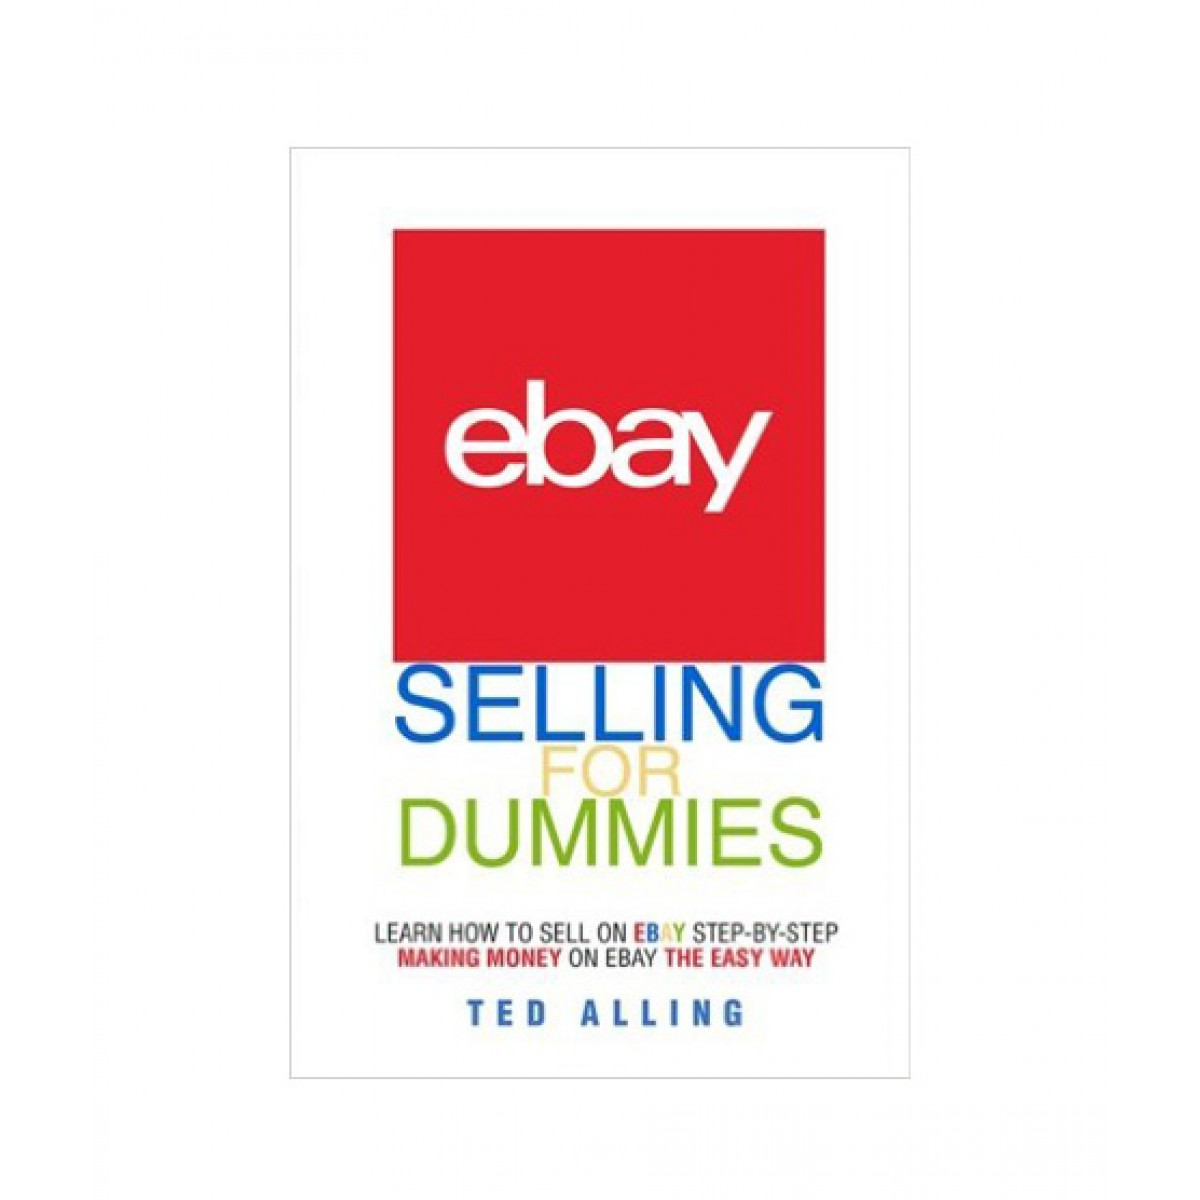 Ebay Selling For Dummies Book Available In Pakistan Buy Ebay Selling For Dummies Book Ishopping Pk